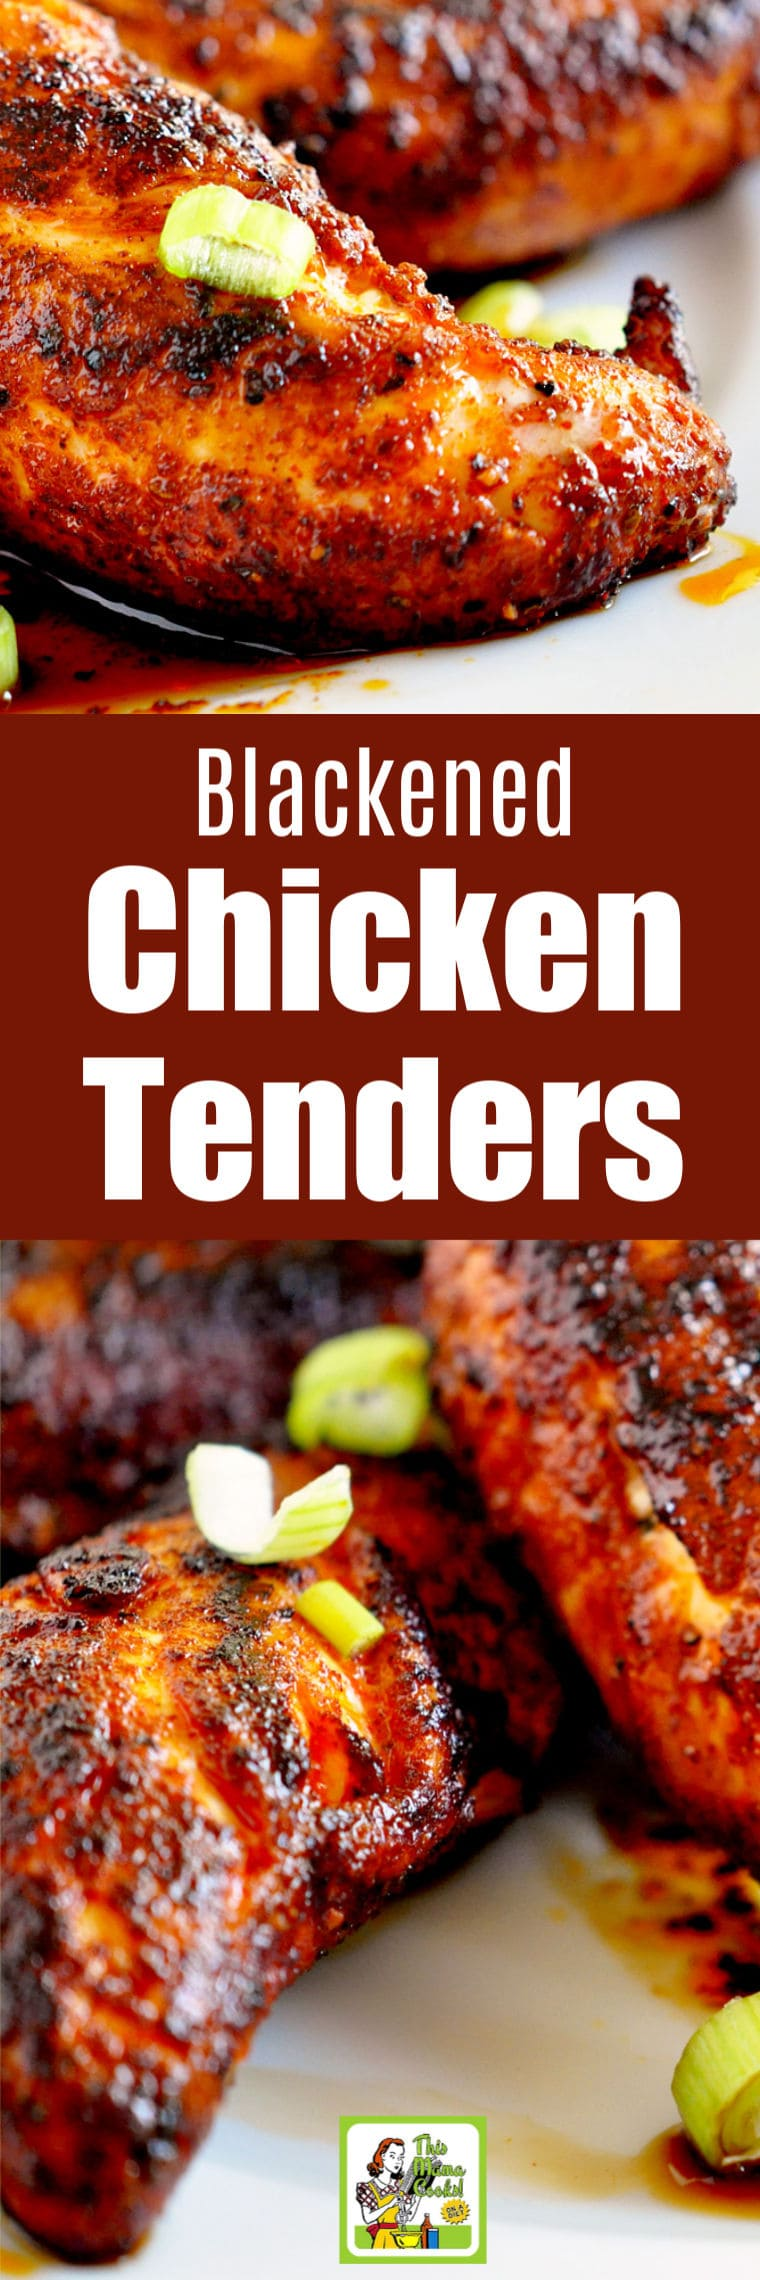 Your family will love these Blackened Chicken Tenders. This healthy dinner recipe makes a tasty party appetizer, too. #recipe #healthyrecipes #glutenfree #easyrecipes #chicken #dinner #easydinner #appetizers #chickenrecipes #chickenfoodrecipes